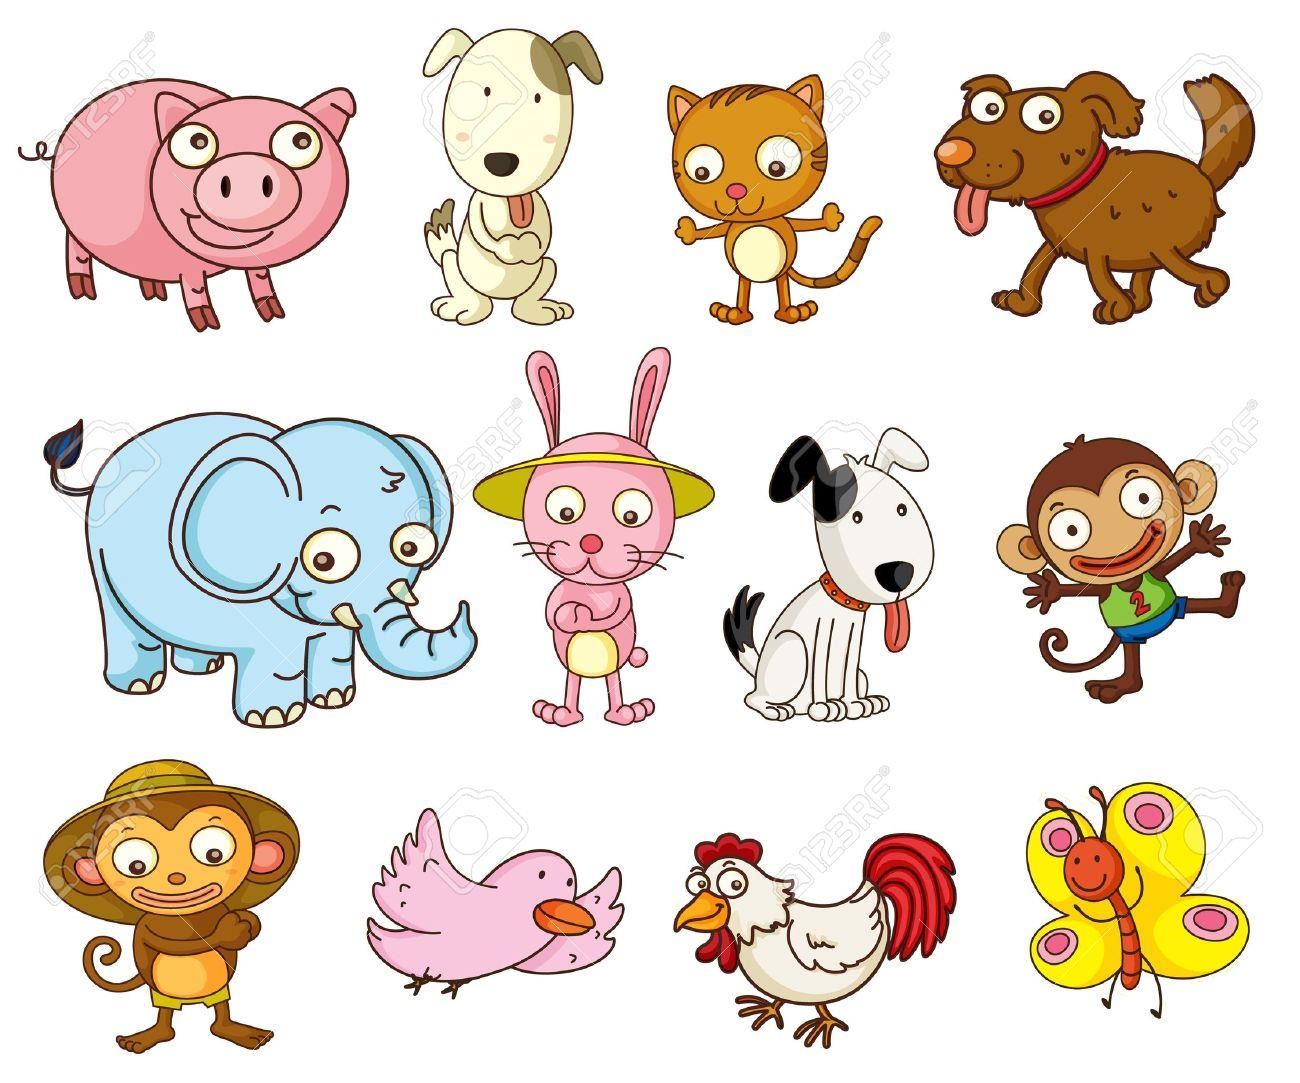 Animals clipart. Fotolip com rich image